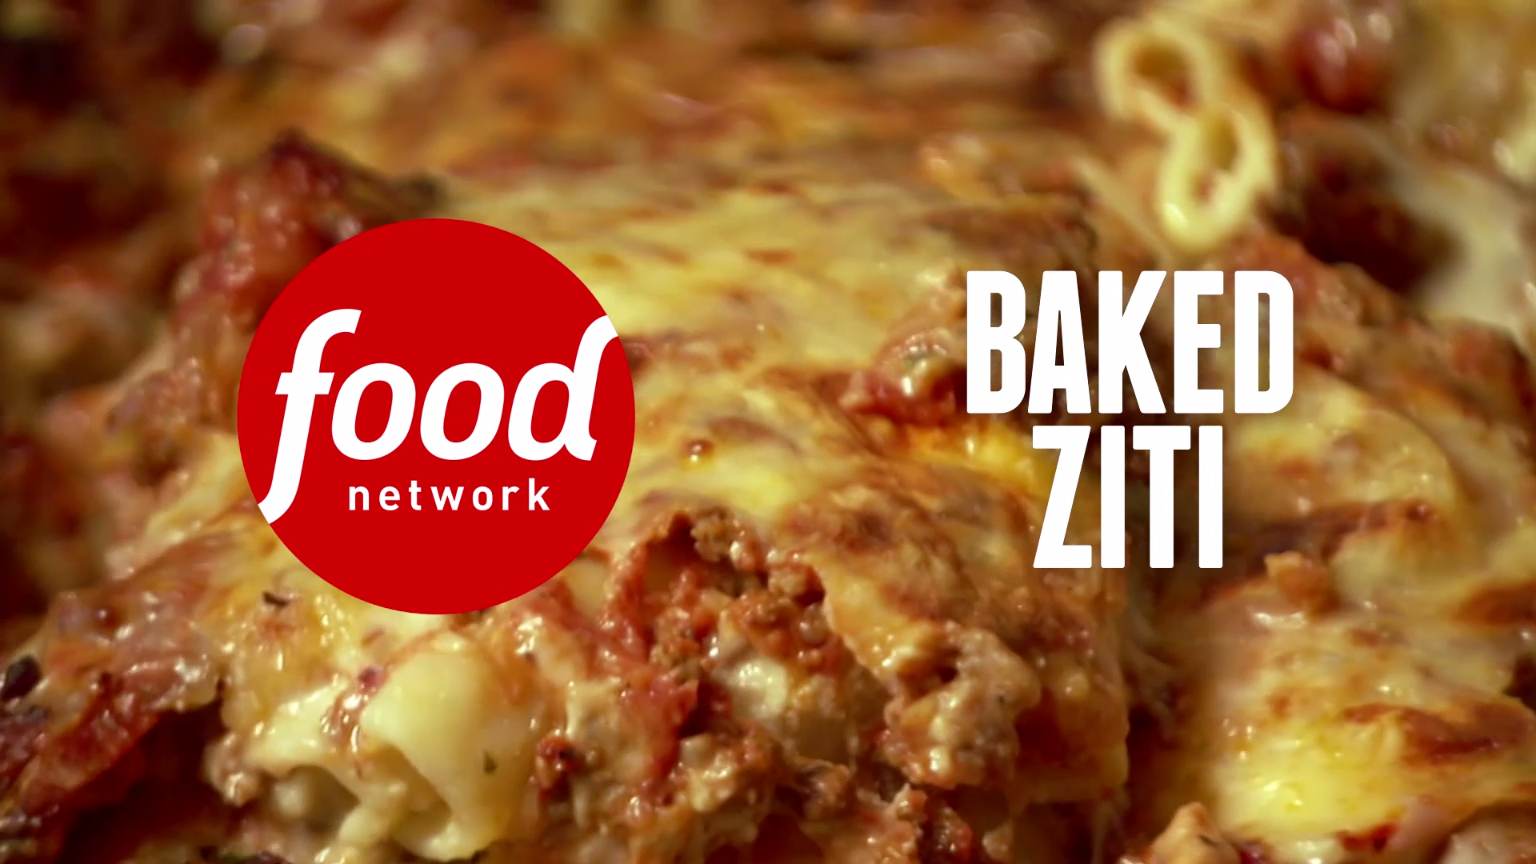 Ziti Ree's kid-friendly Baked Ziti is packed with ground beef and Italian sausage, plus a combination of parmesan, mozzarella and ricotta cheese. This is the perfect choice for your tailgating party!Ree's kid-friendly Baked Ziti is packed with ground beef and Italian sausage, plus a combination of parmesan, mozzarella and ricotta cheese. This i...